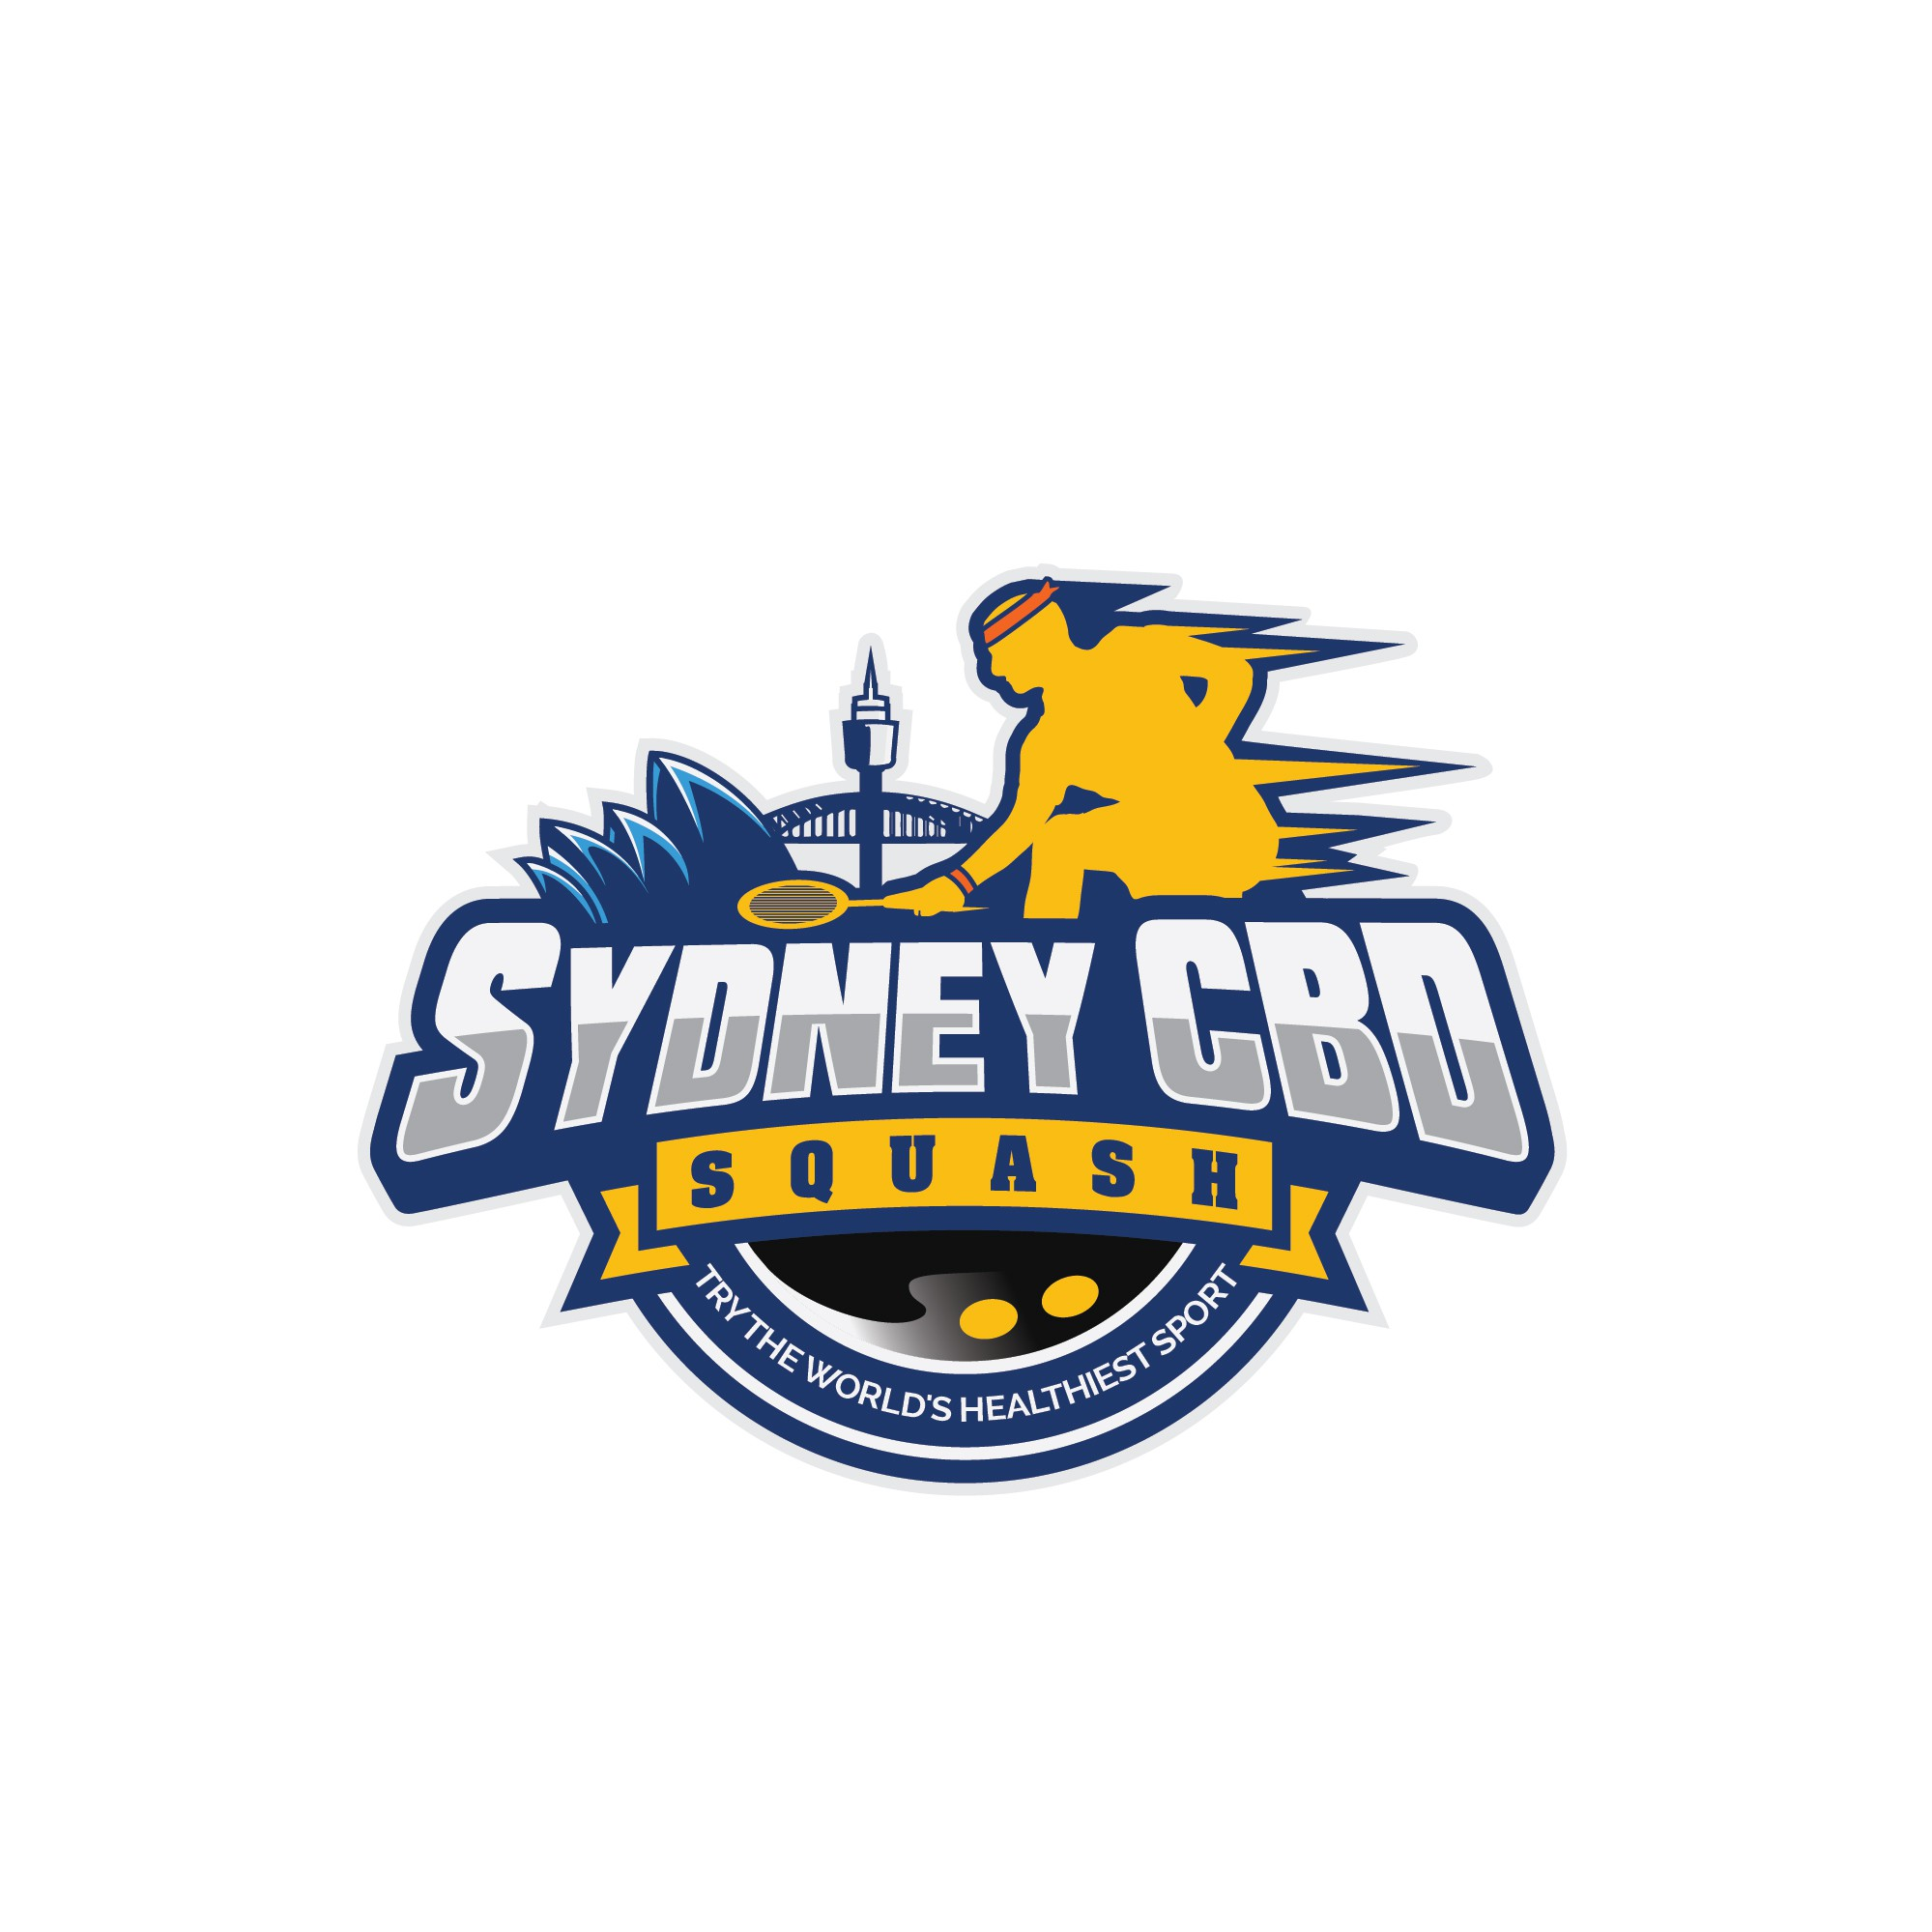 Sydney CBD Squash Club looking for a logo showing speed / athletism to attract new players to sport